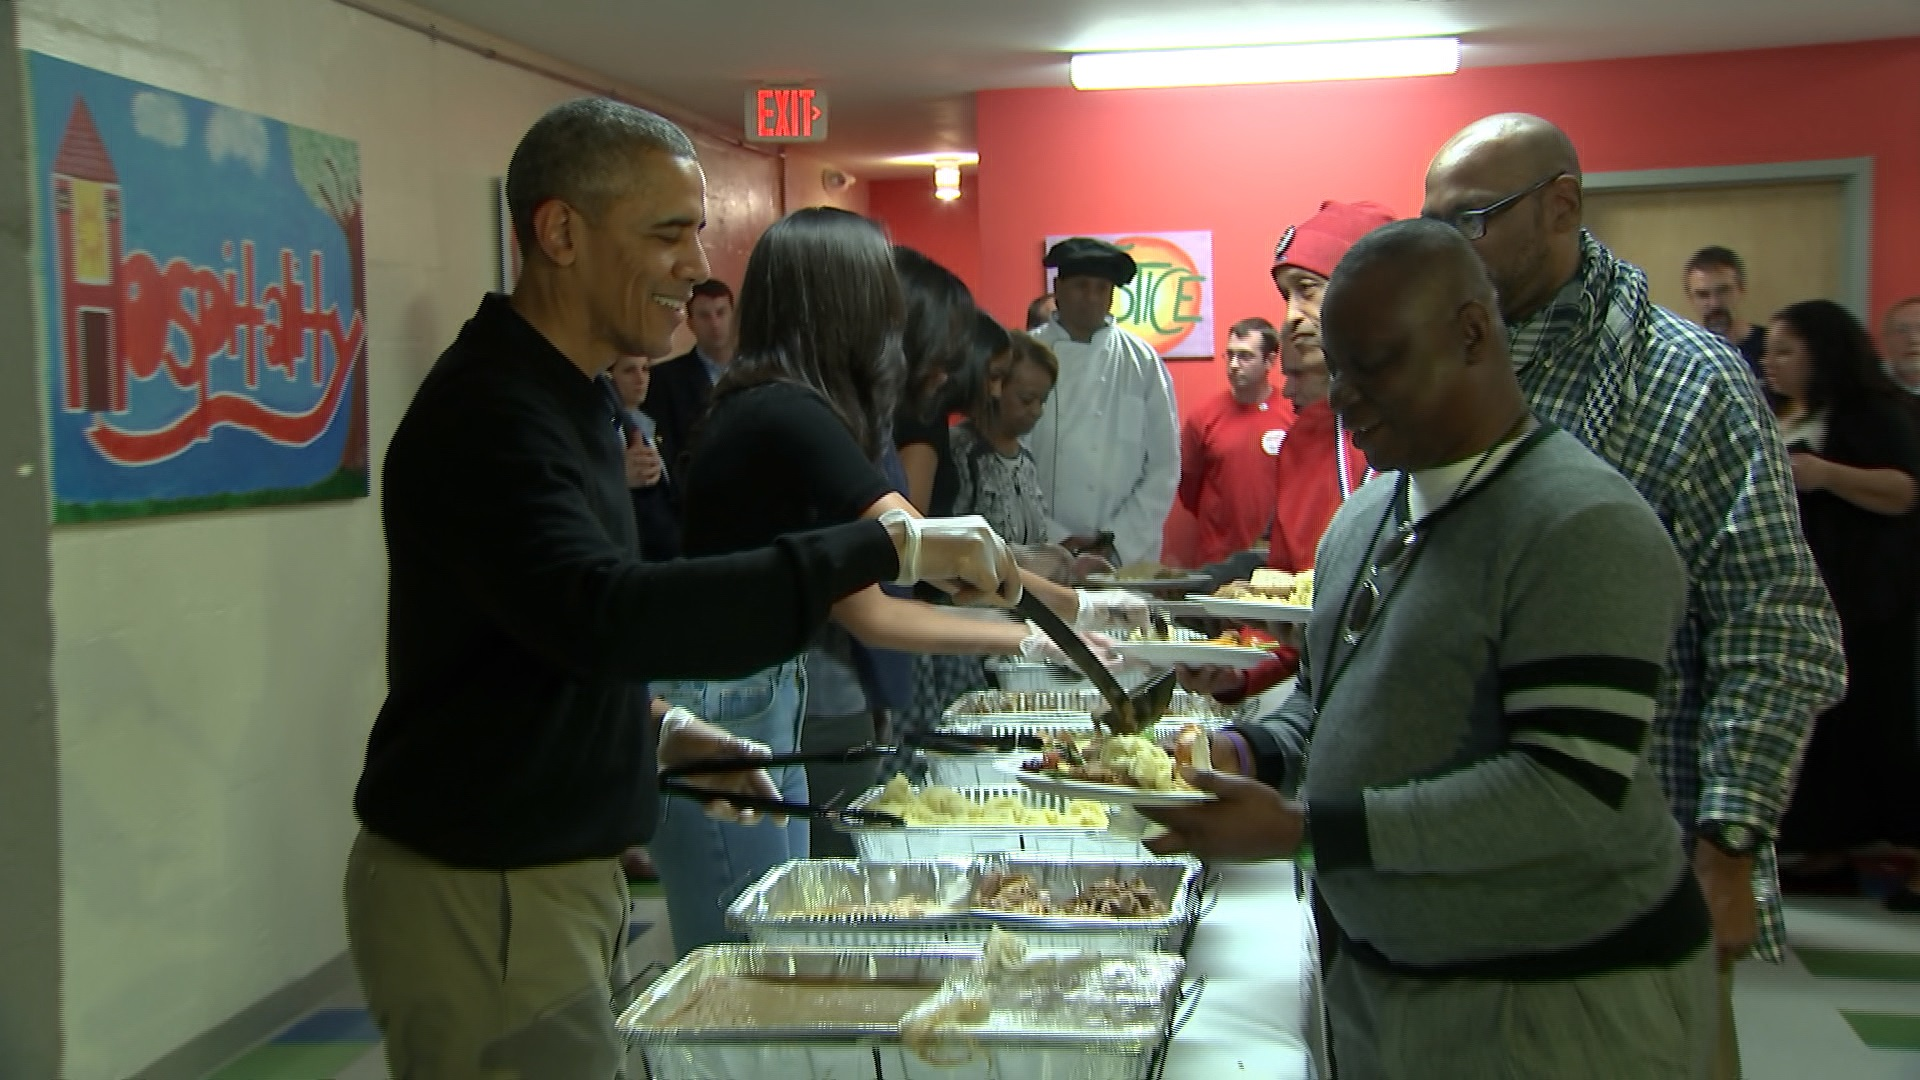 The Obamas serve meals at DC homeless center